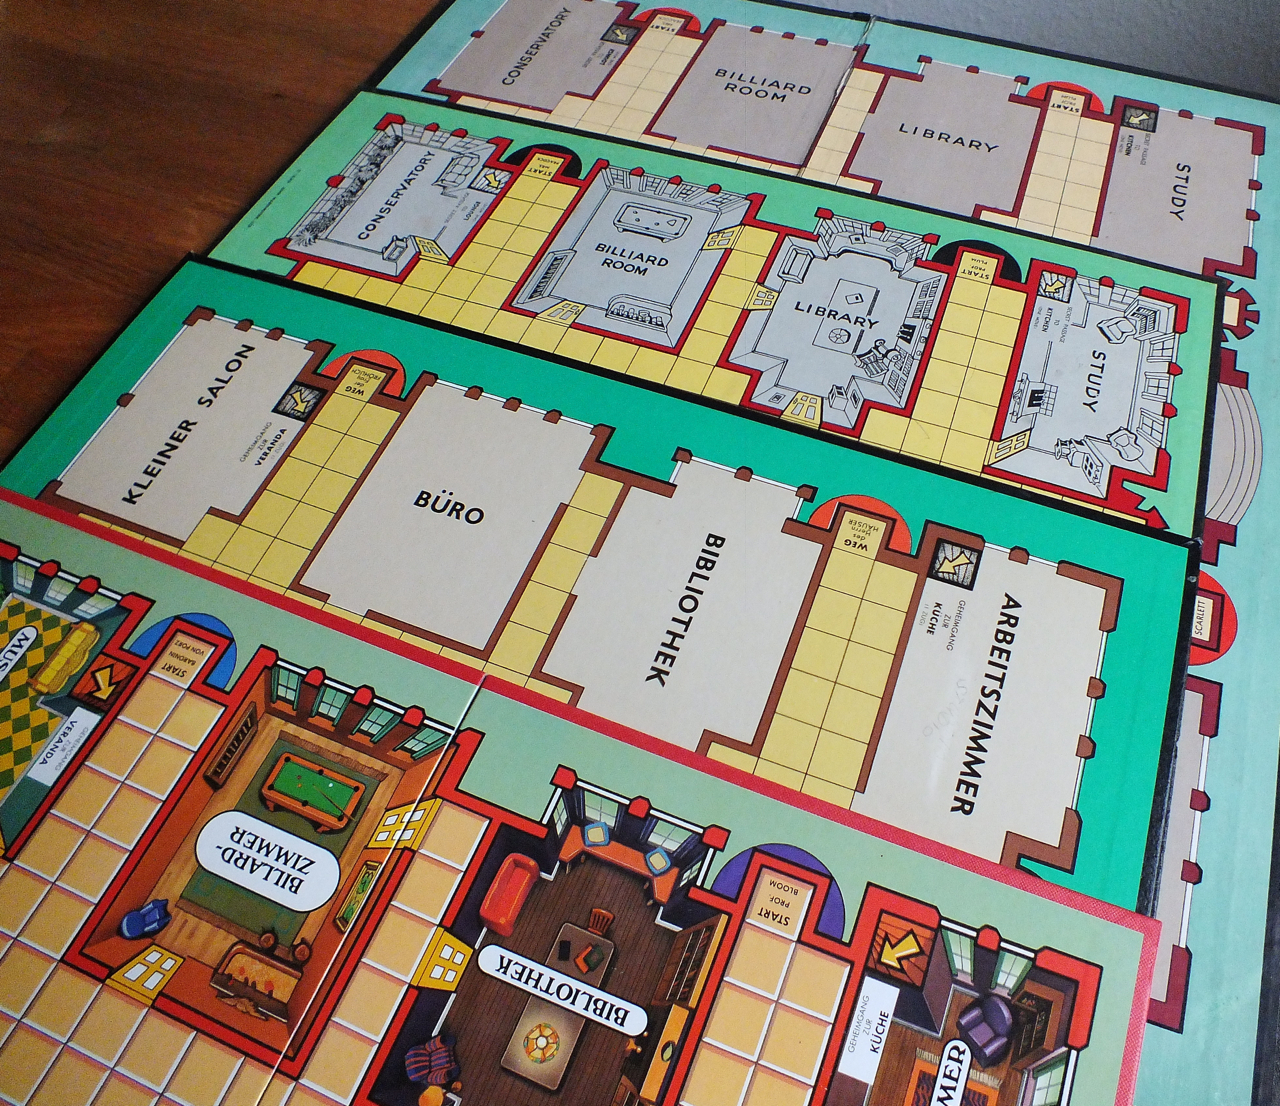 Billard Duisburg Clue Cluedo Board Comparison Note Supersize First Waddingtons